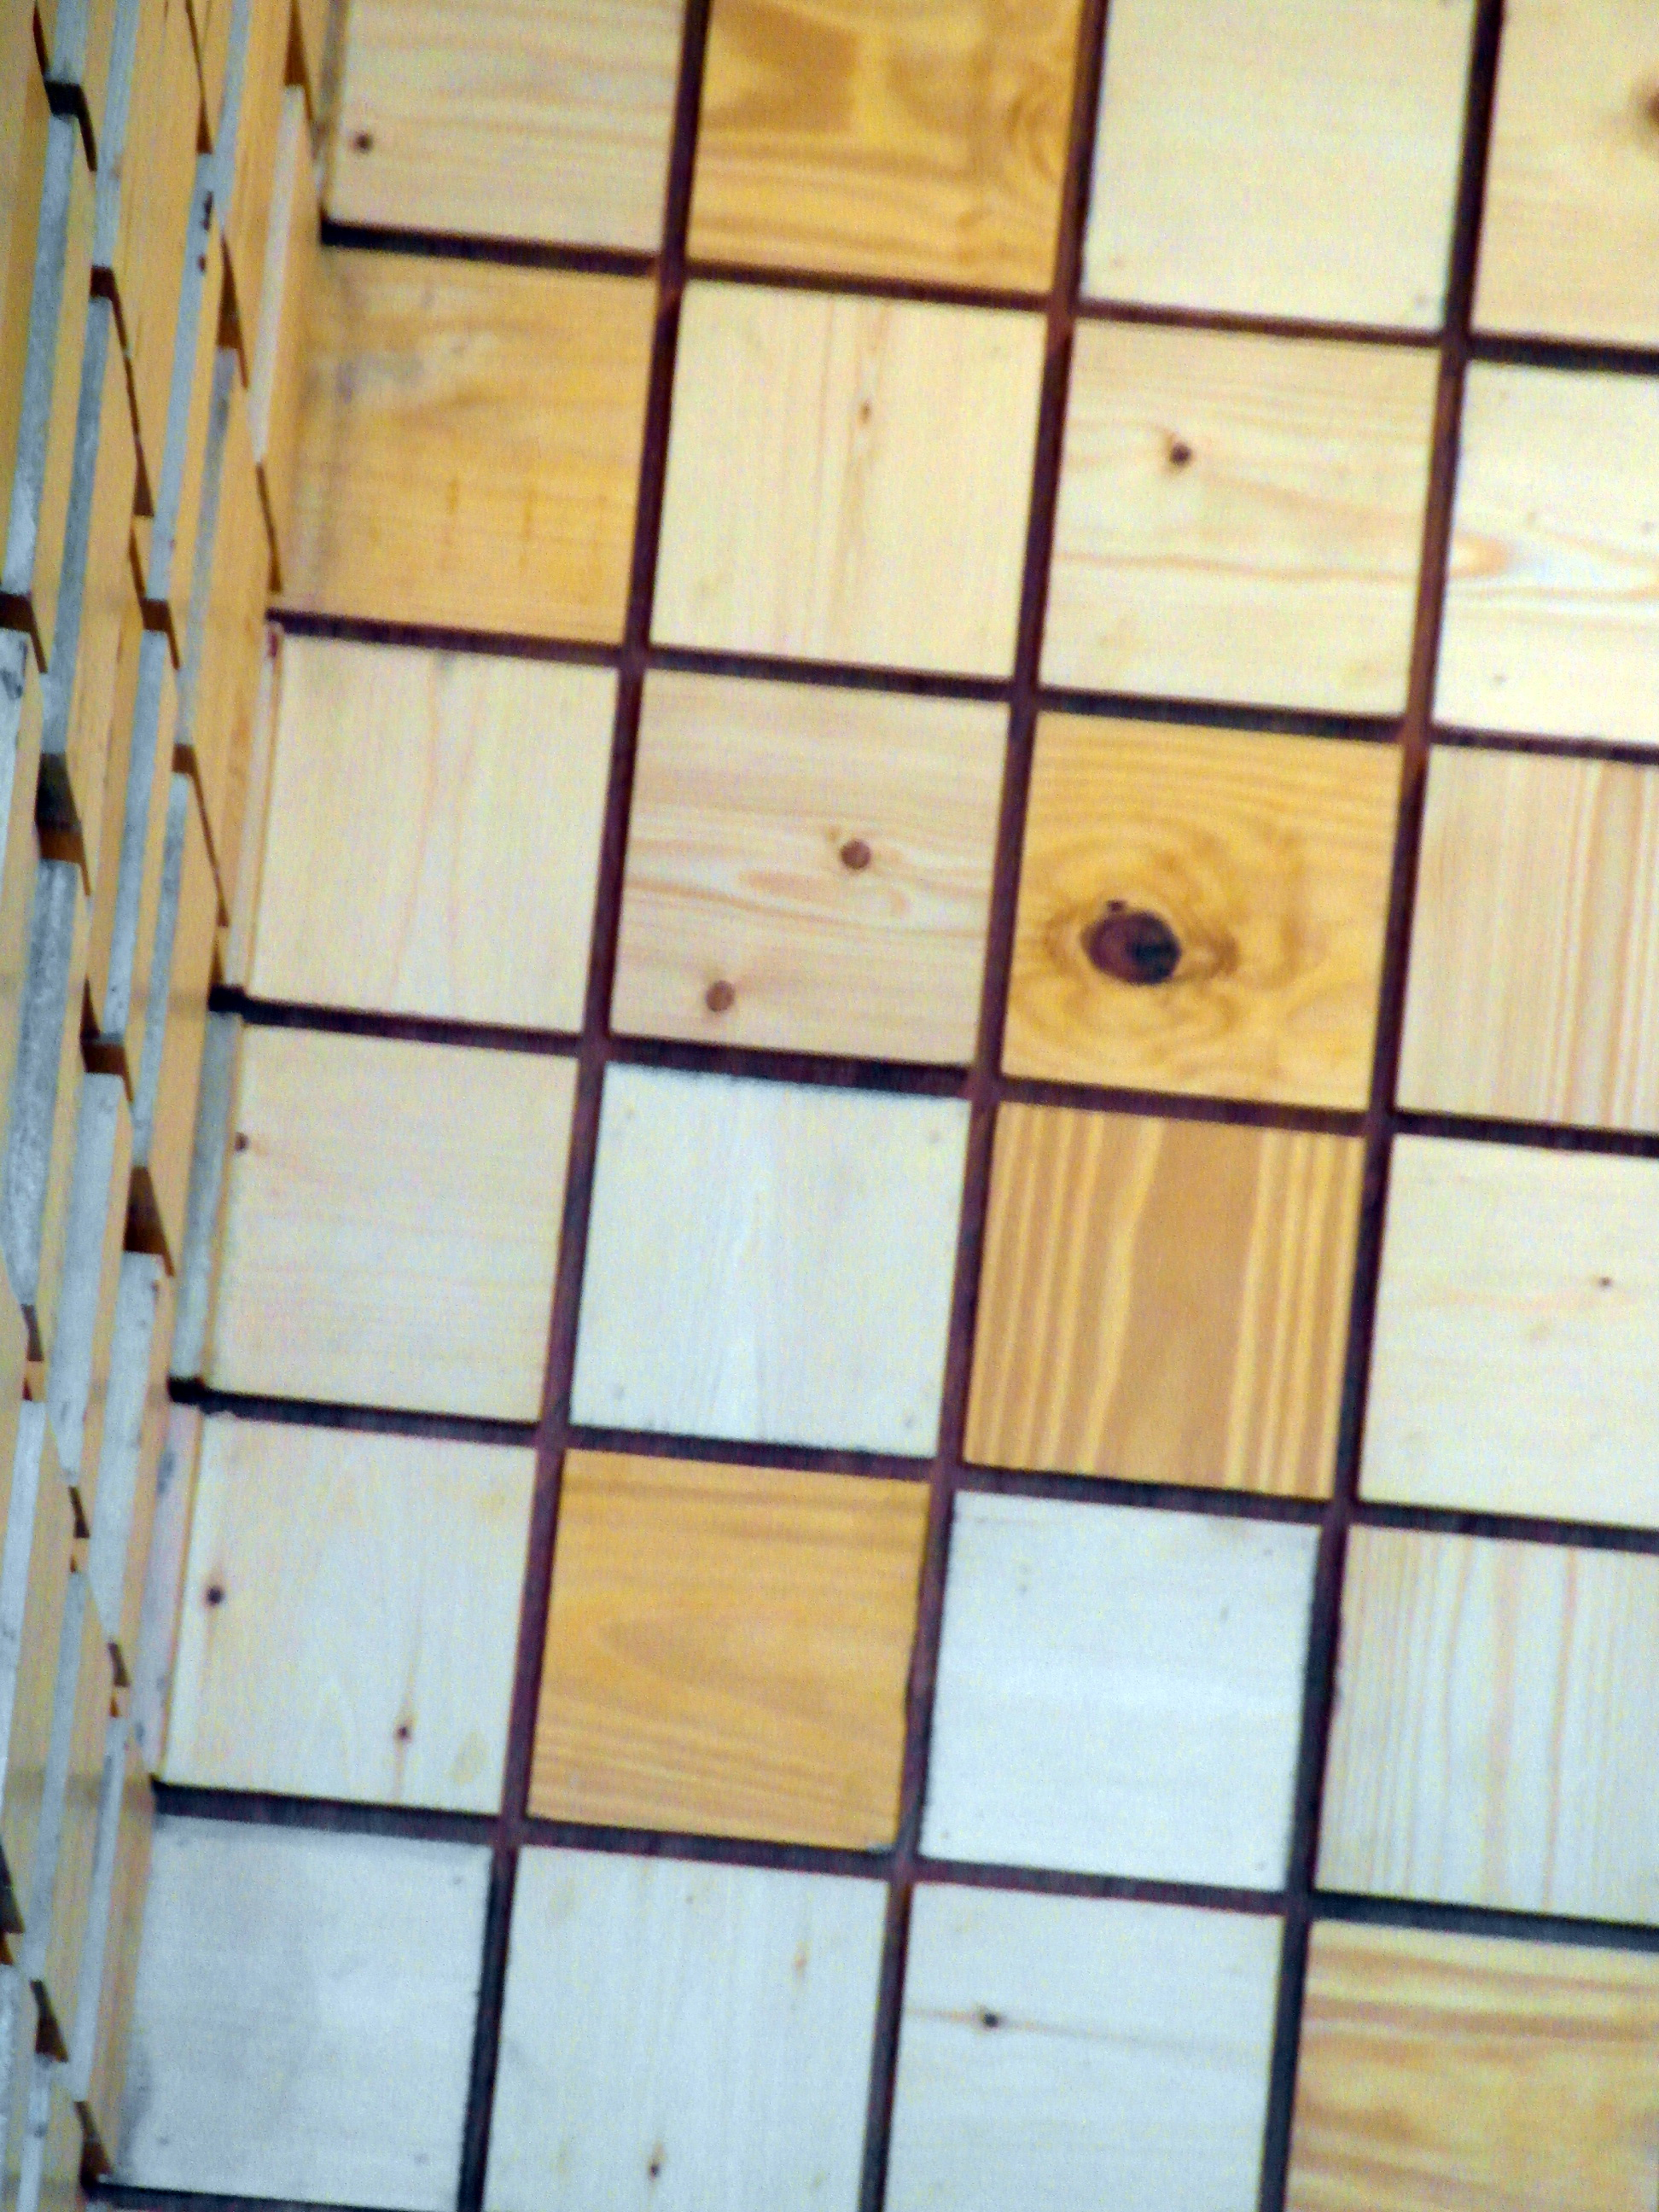 Wood Grid Texture, Abstract, Shapes, Wood, Tiles, HQ Photo